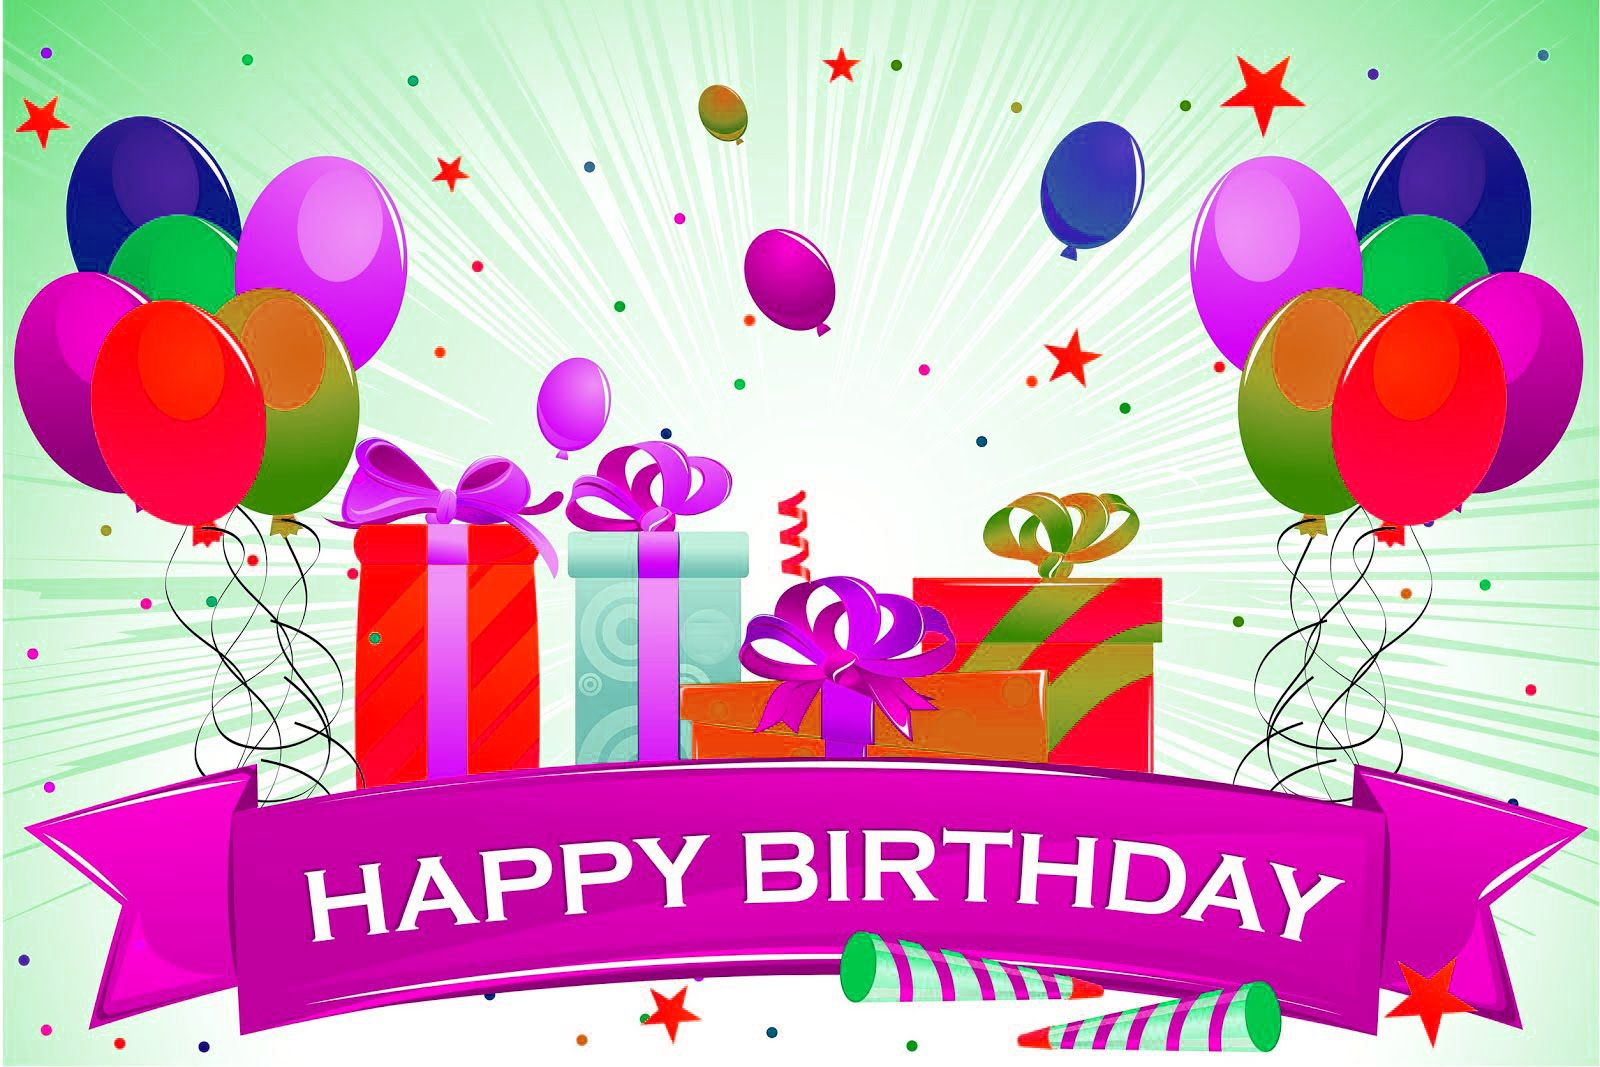 Birthday cards online hd wallpapers download free birthday - Happy birthday card wallpaper ...